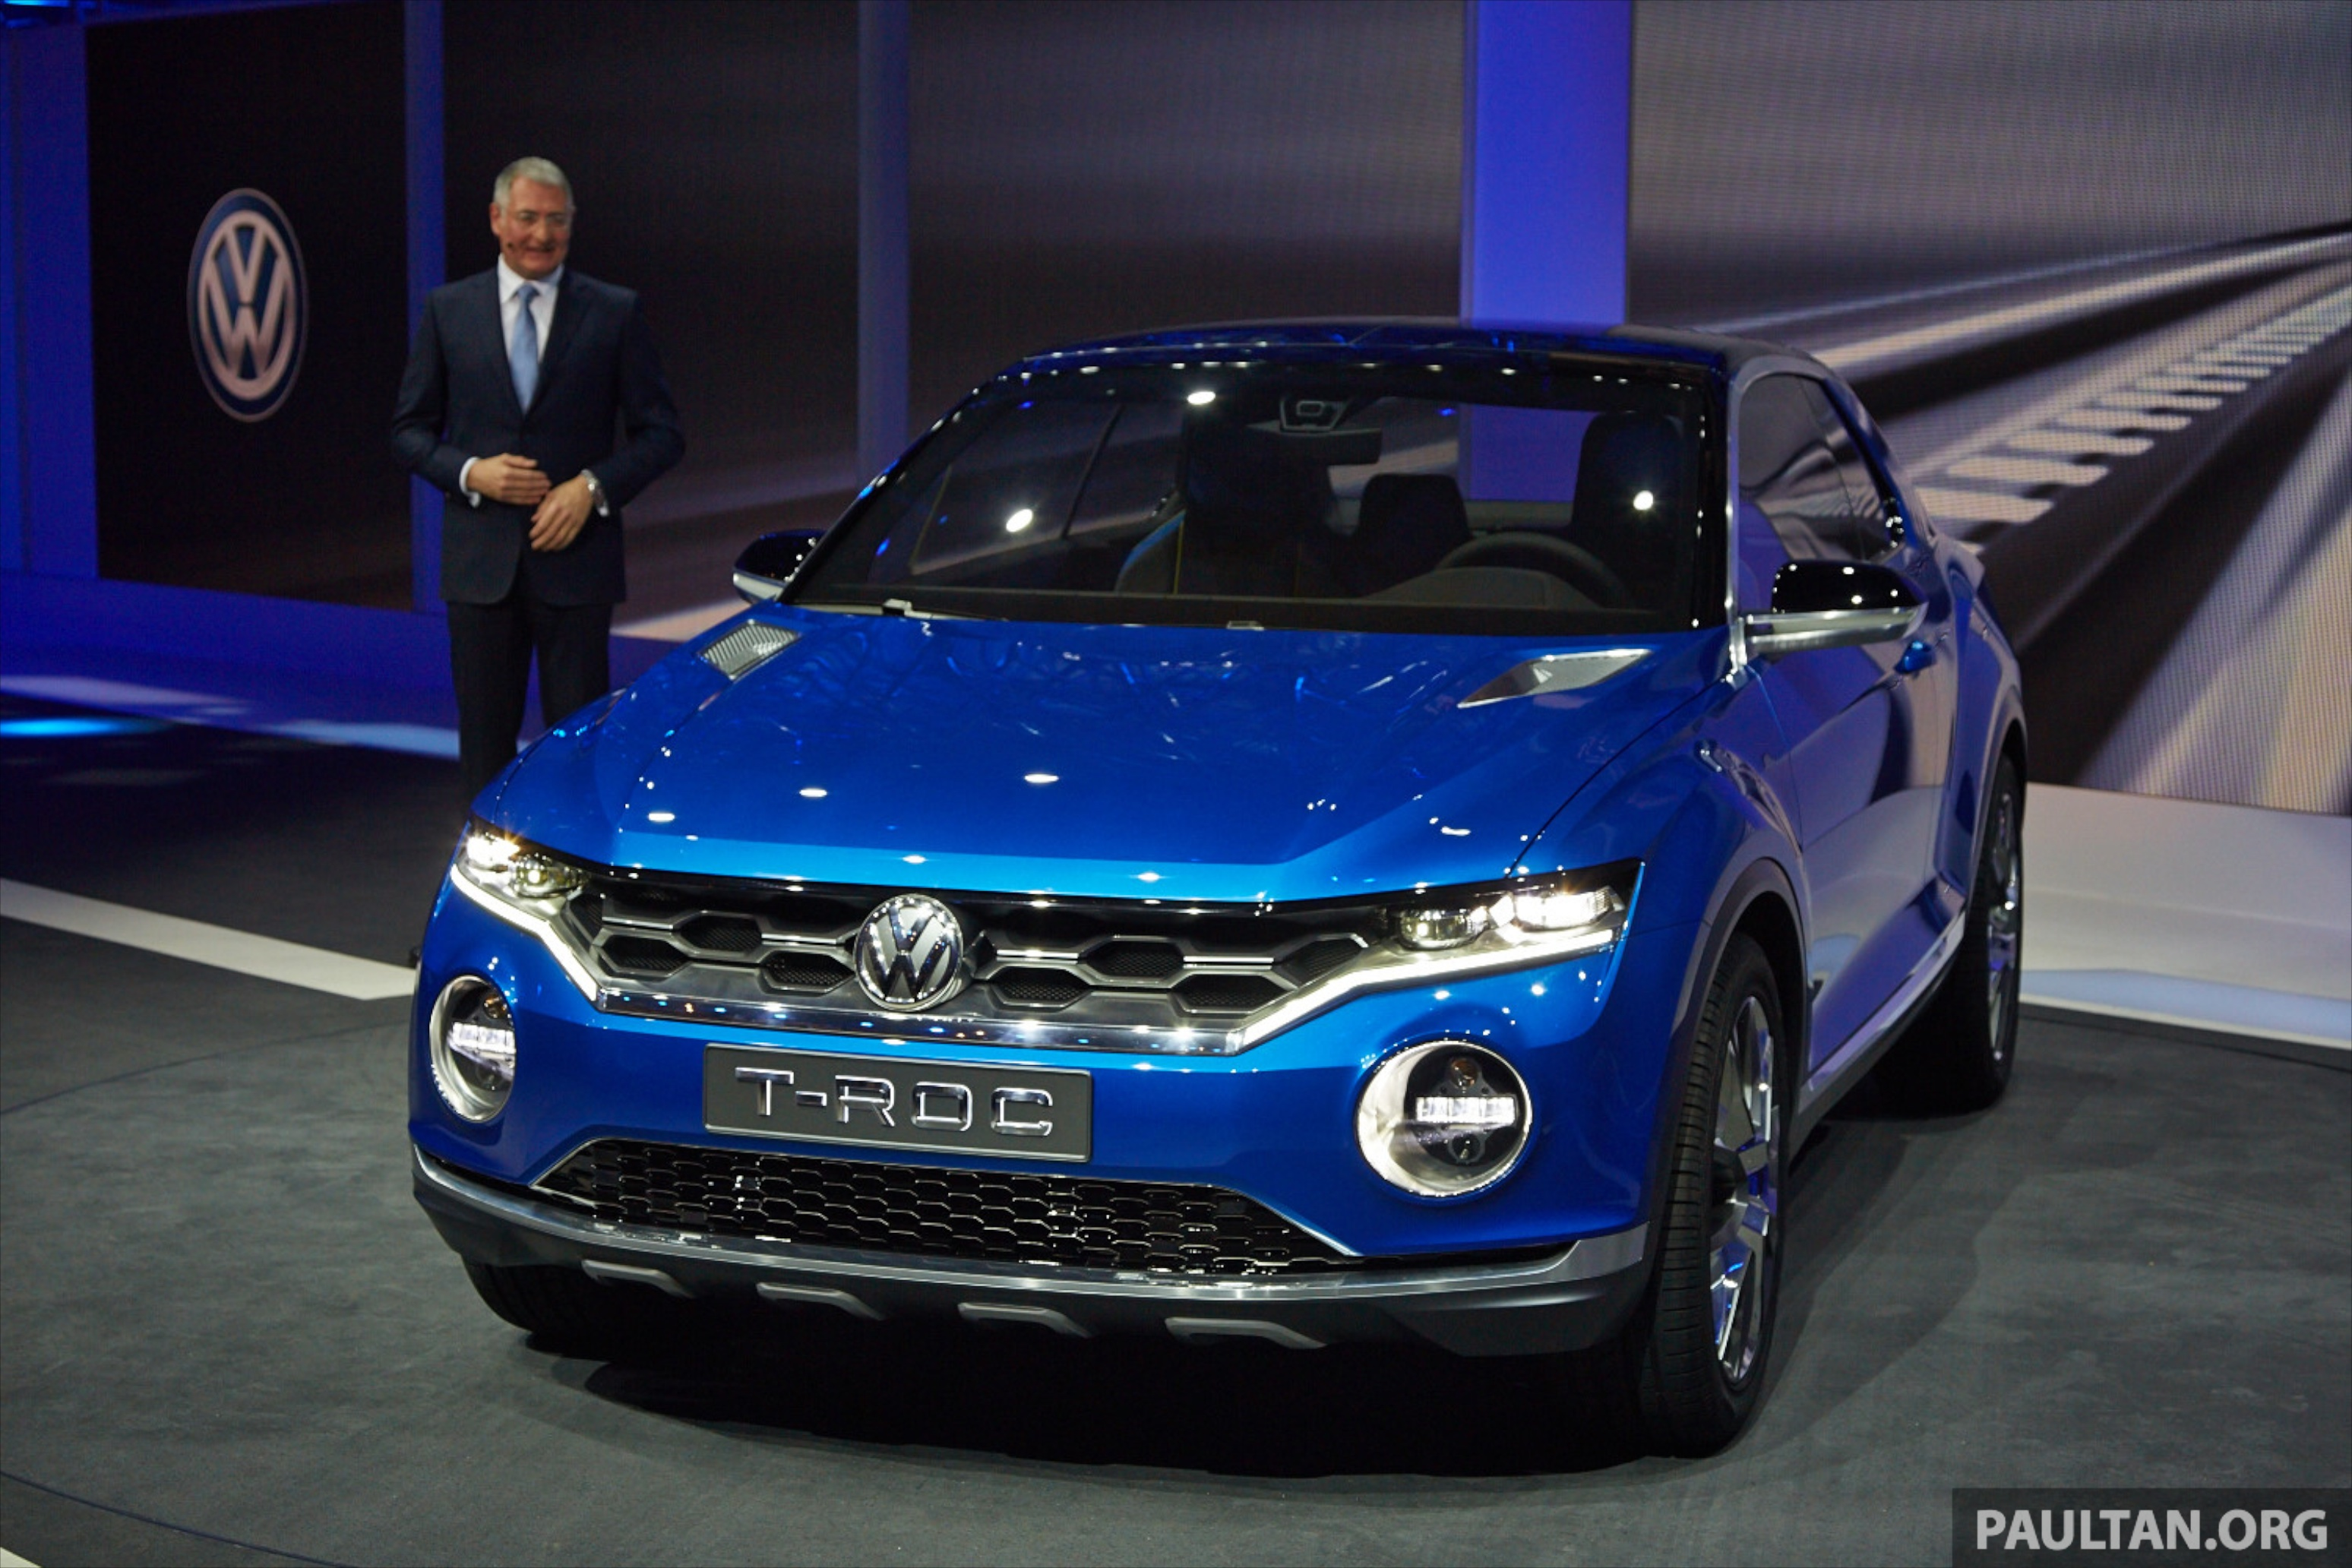 volkswagen t roc concept previews upcoming suv paul tan. Black Bedroom Furniture Sets. Home Design Ideas